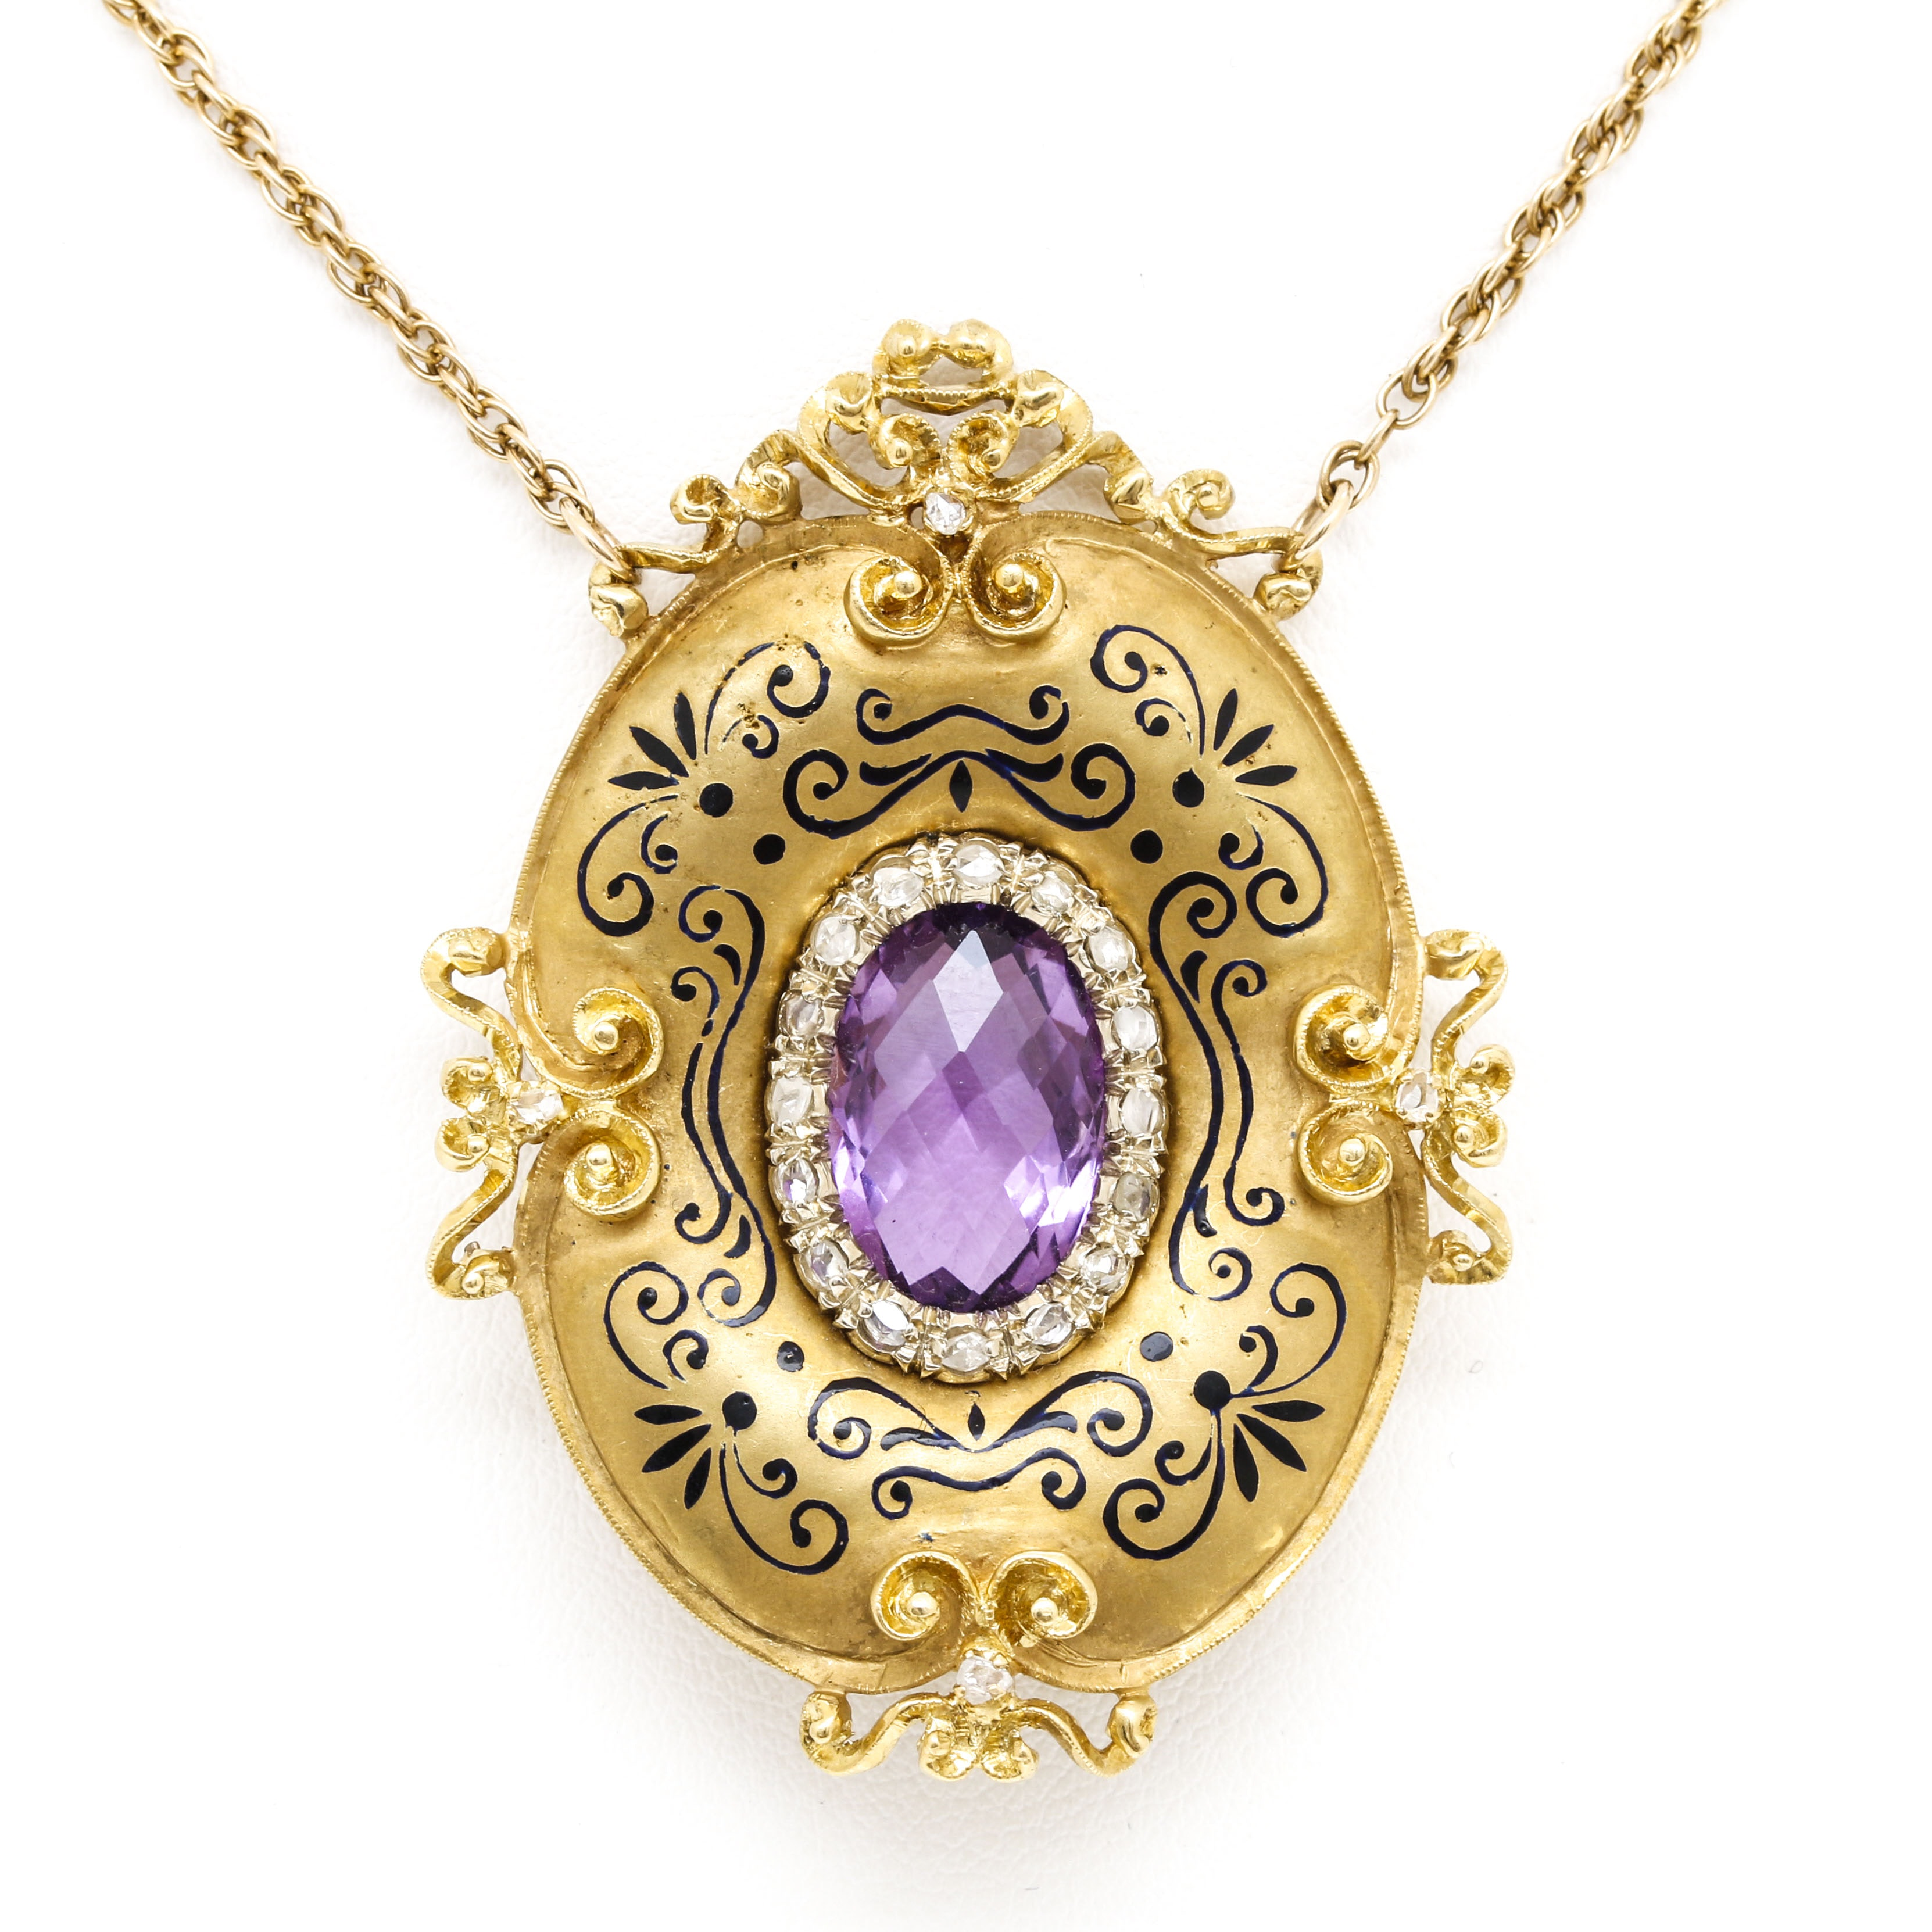 14K and 18K Yellow Gold 5.65 CT Amethyst and Diamond Pendant Necklace